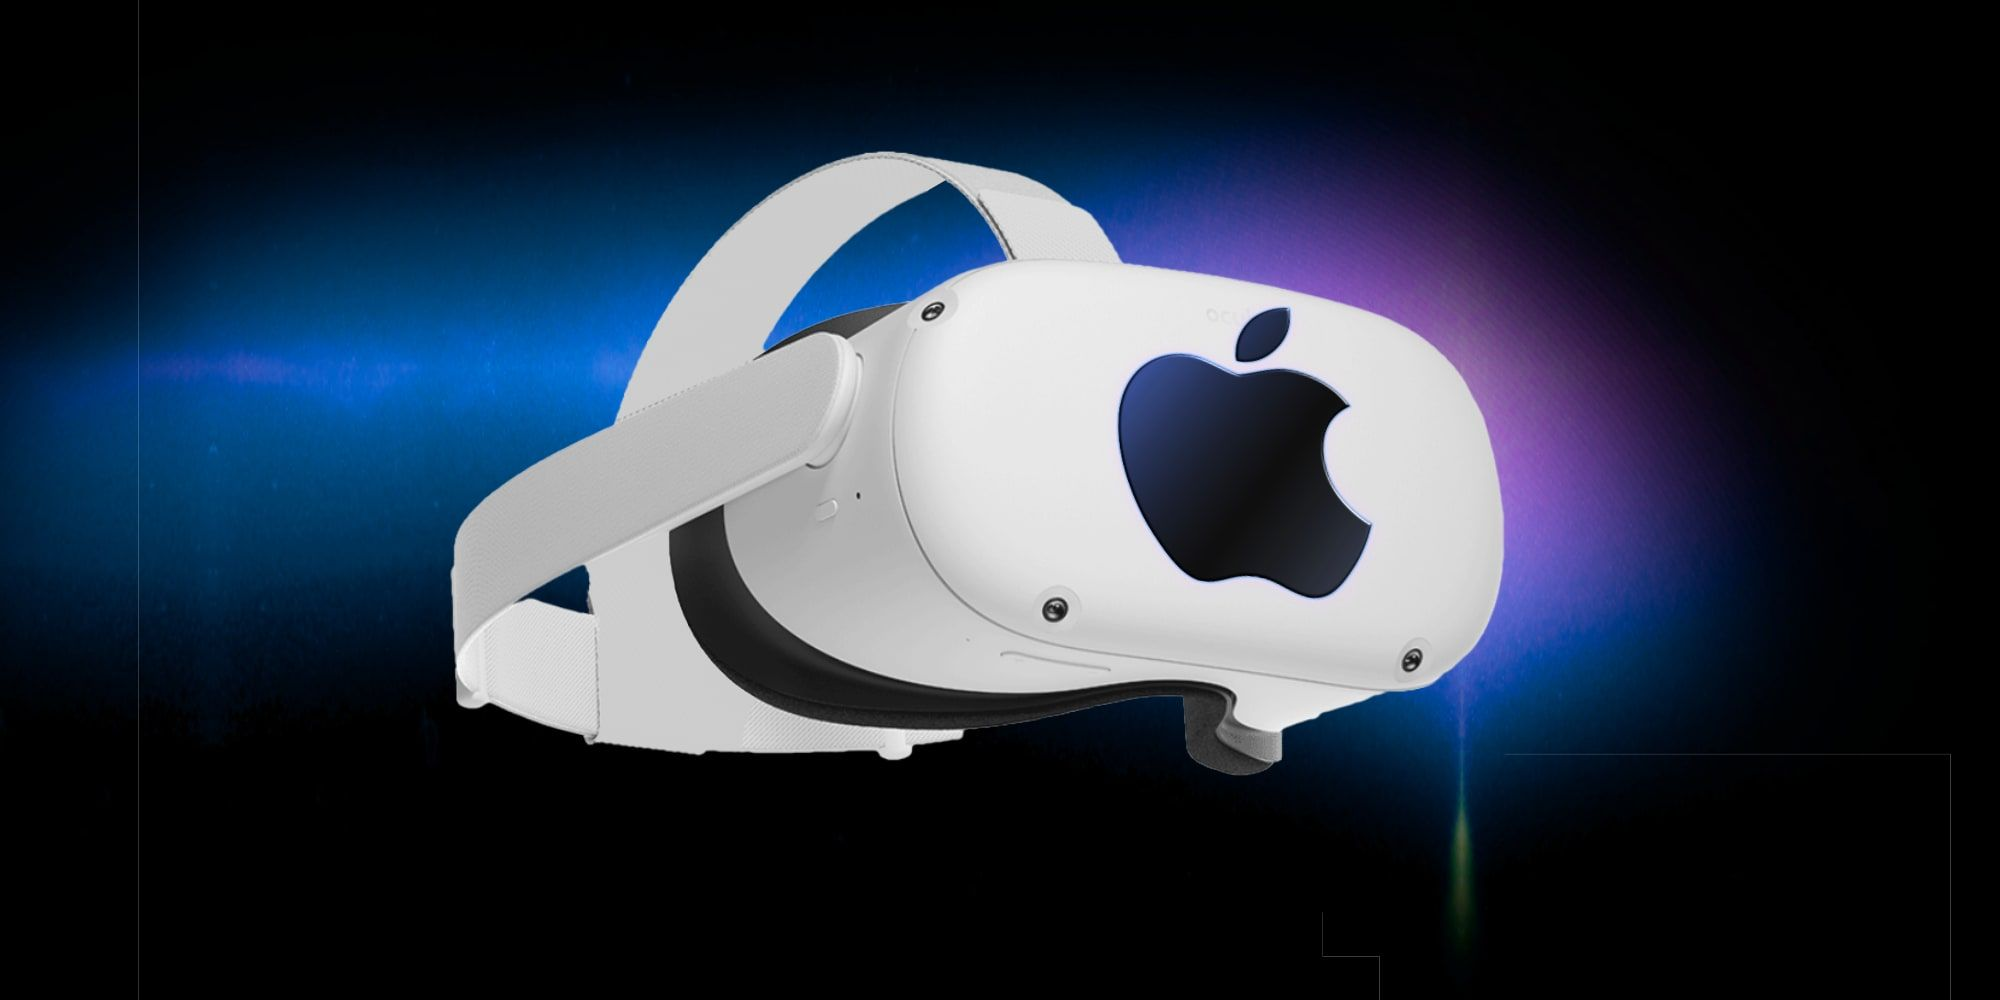 Apple VR Headset Features, Functionality & Design: What To Expect